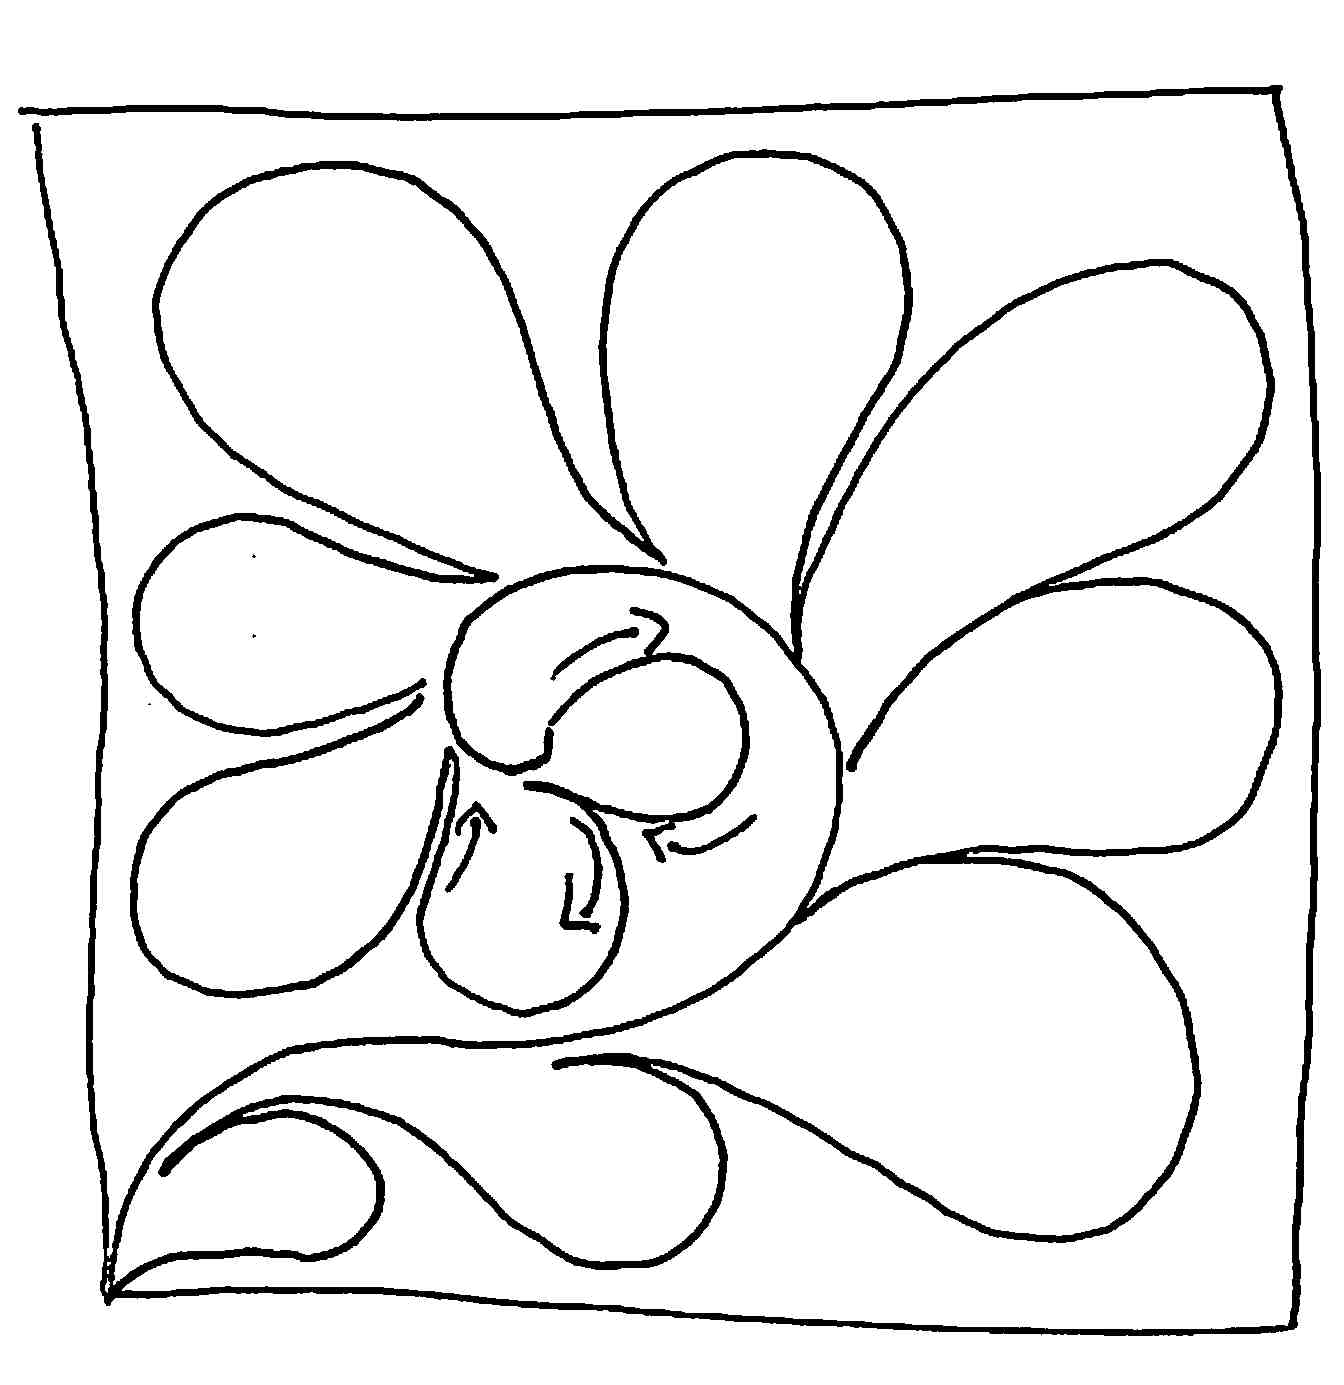 Quilt Coloring Pages For Adults Coloring Pages